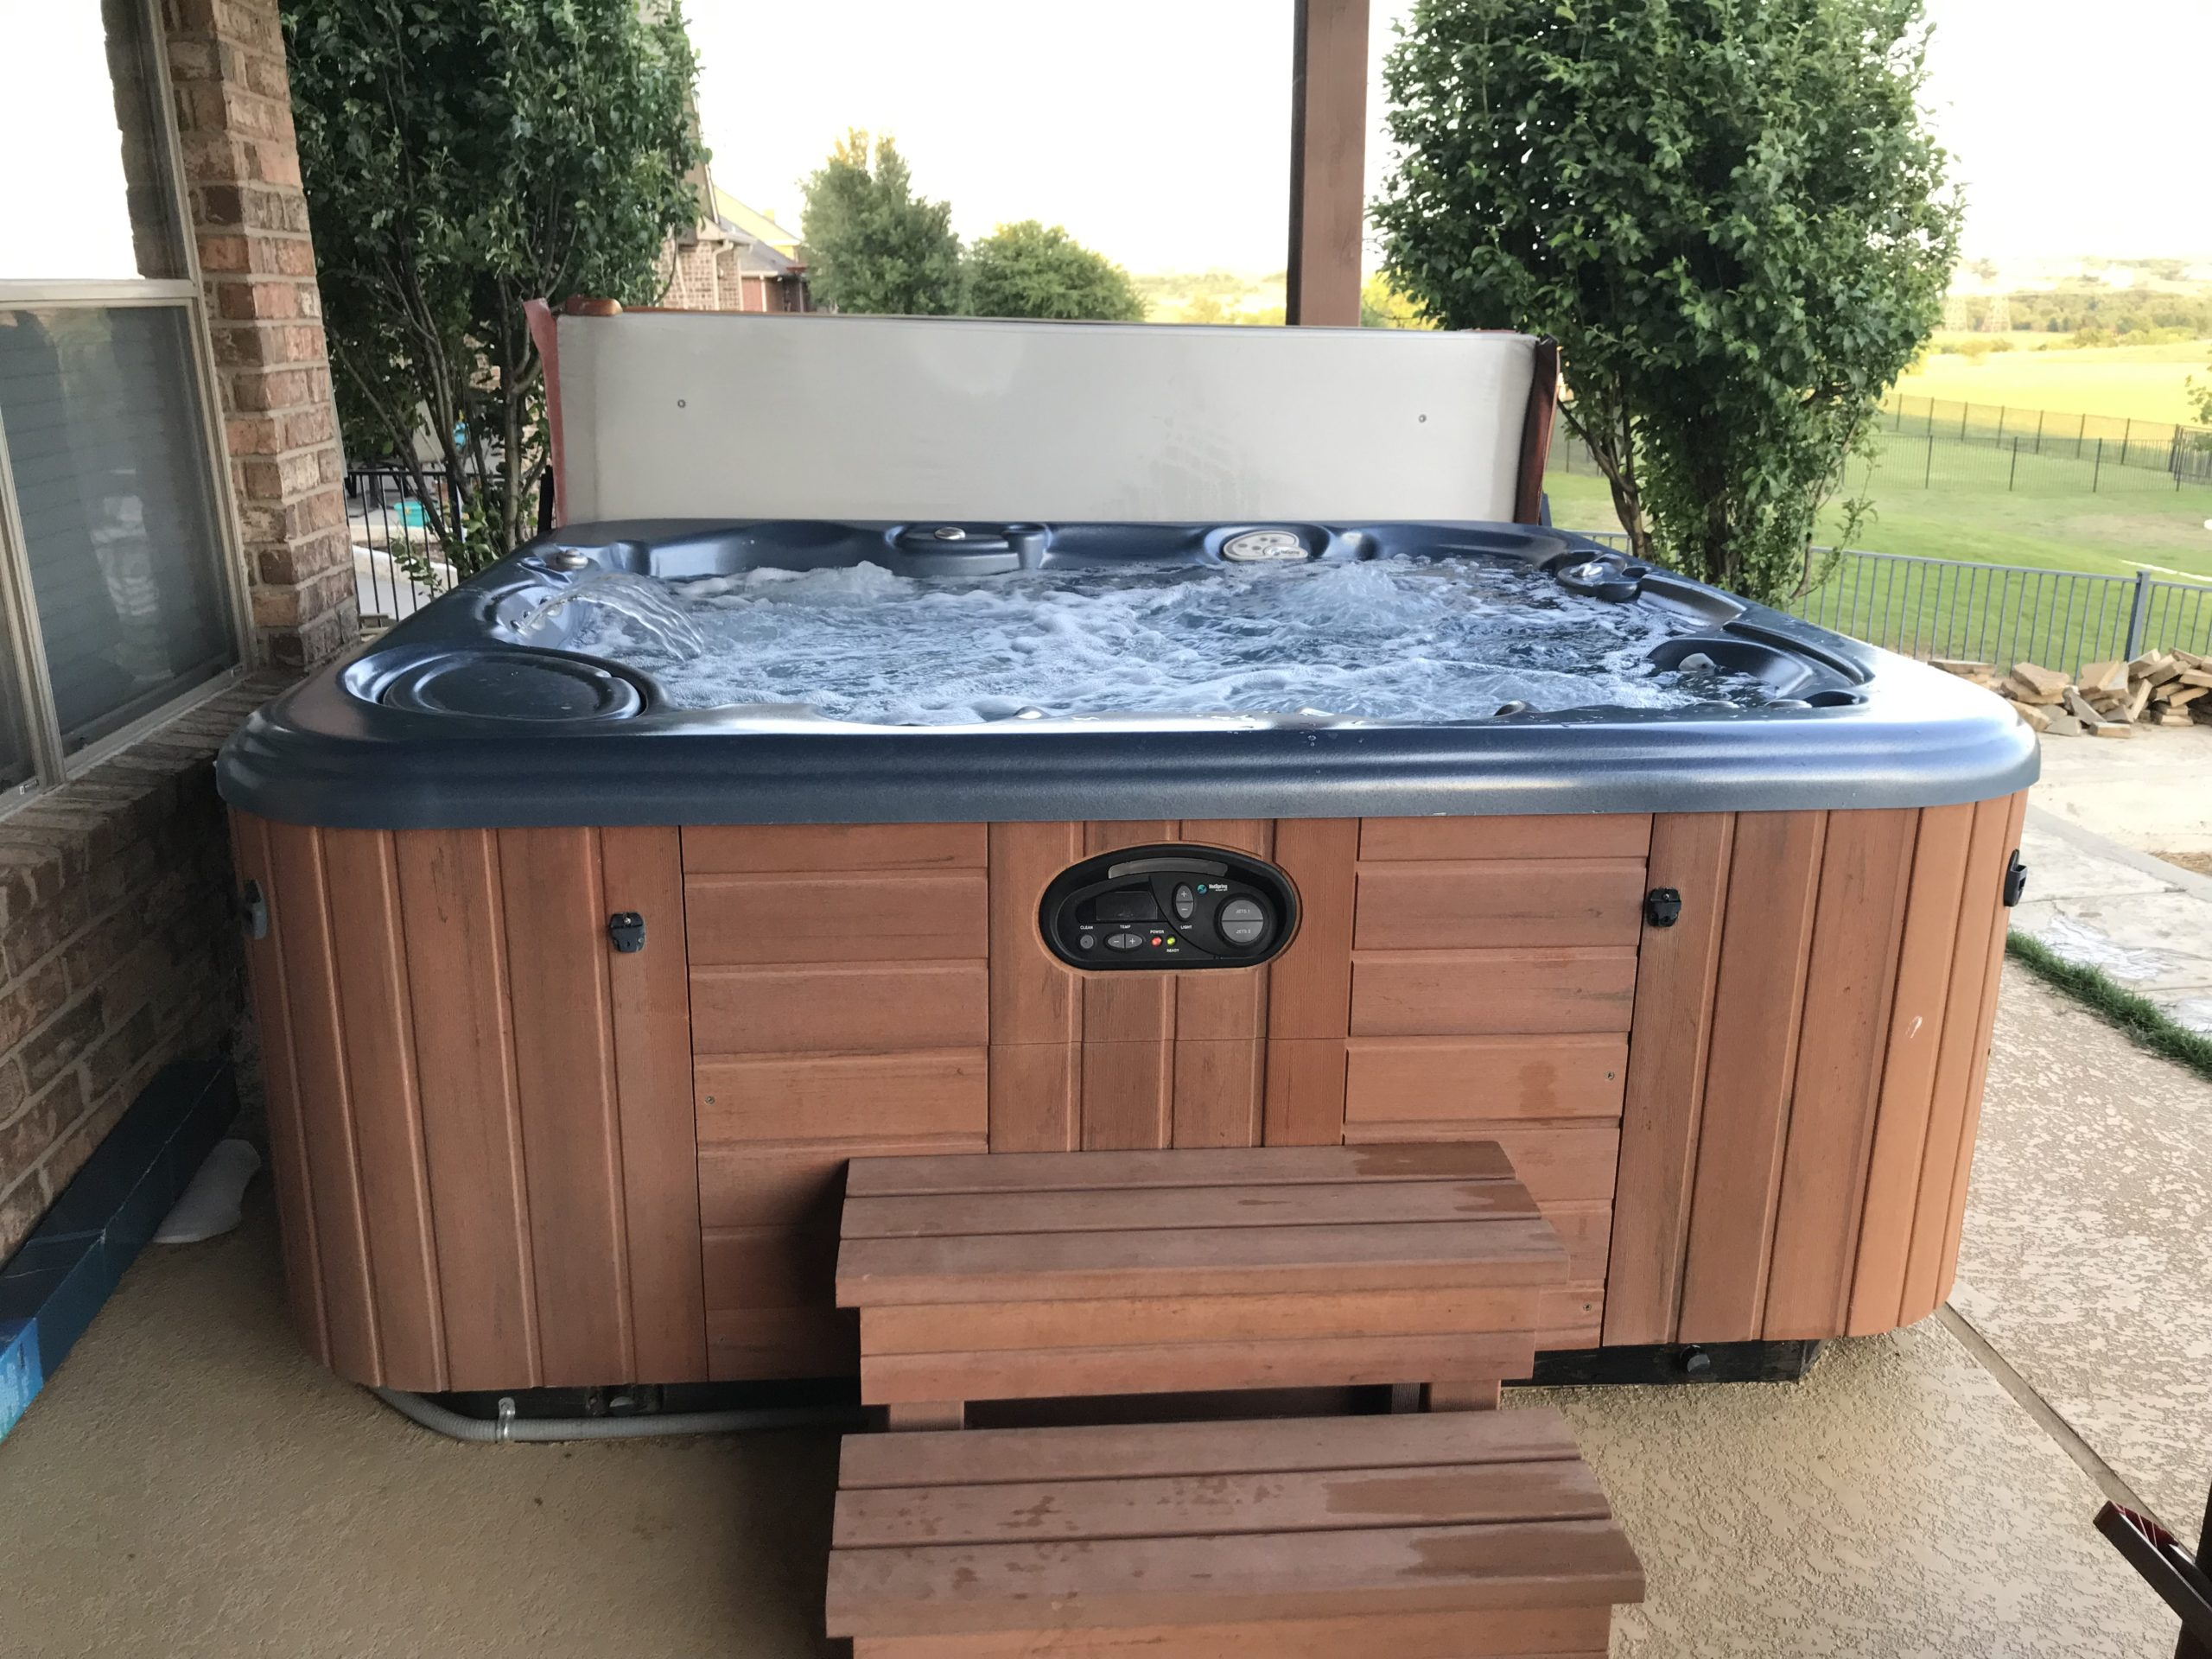 Hot Springs Envoy 5 person Hot Tub w/ steps and cover cradle cover lifter